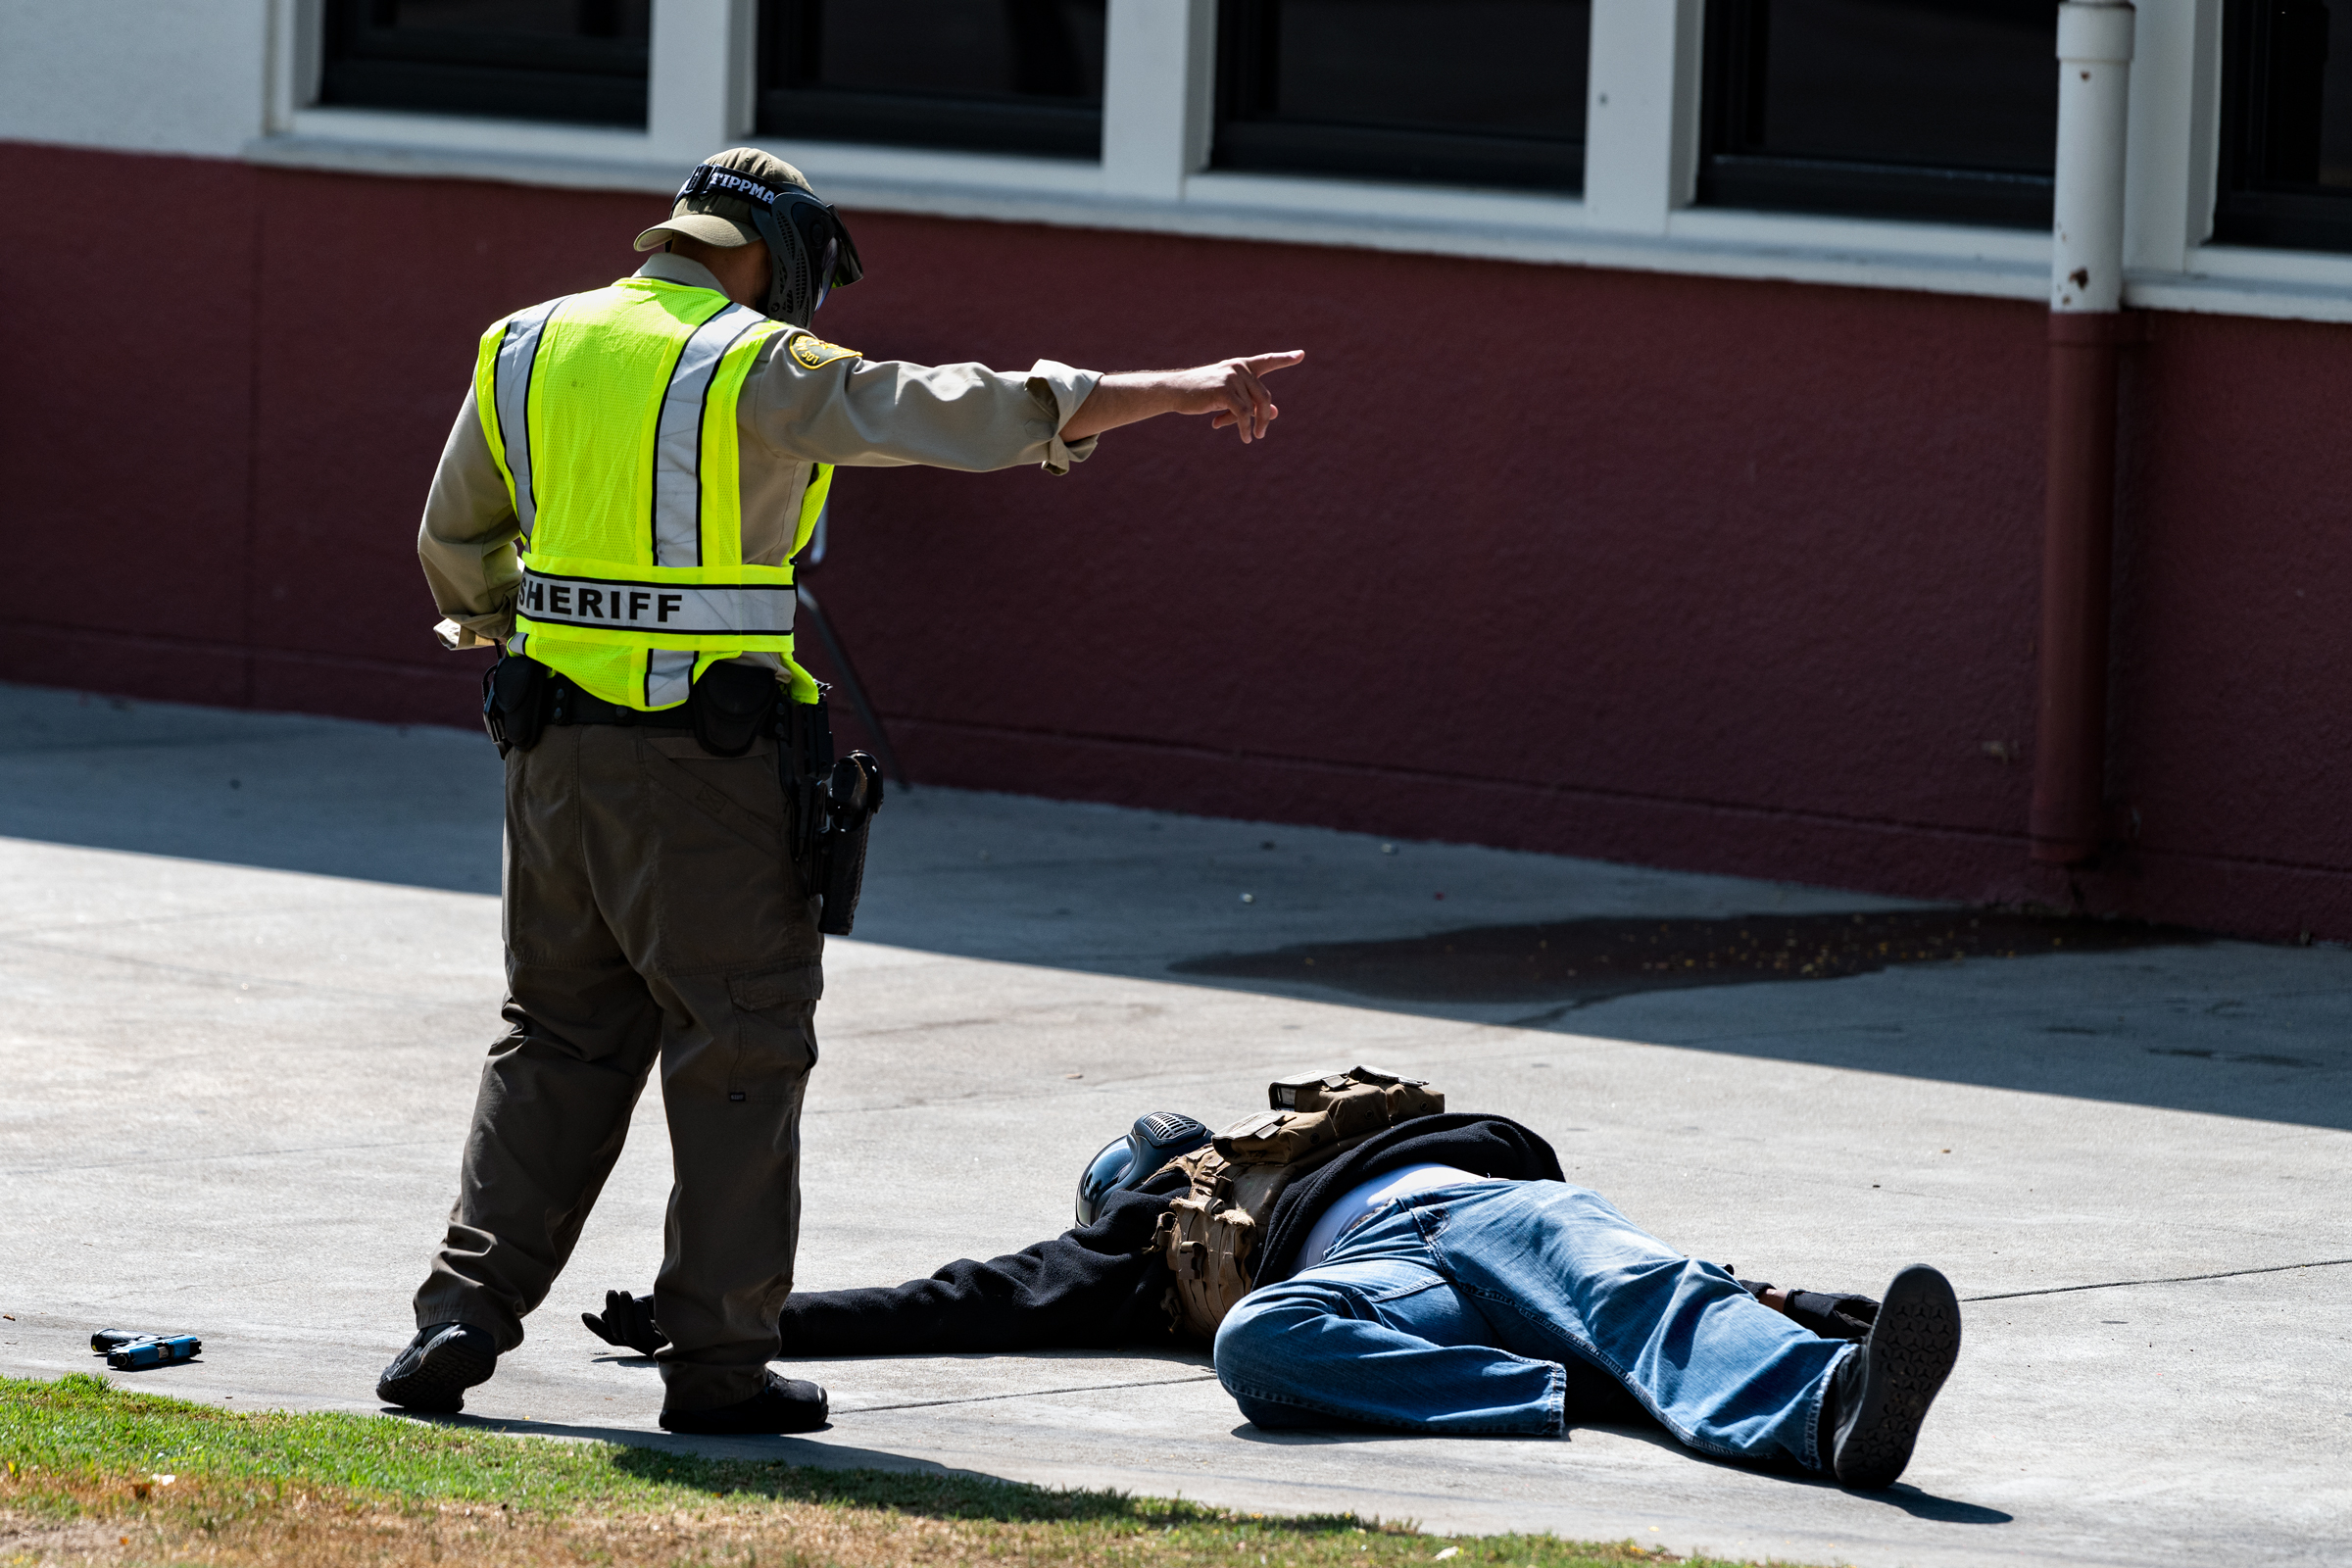 Los Angeles Sheriff's deputies participate in an active shoote